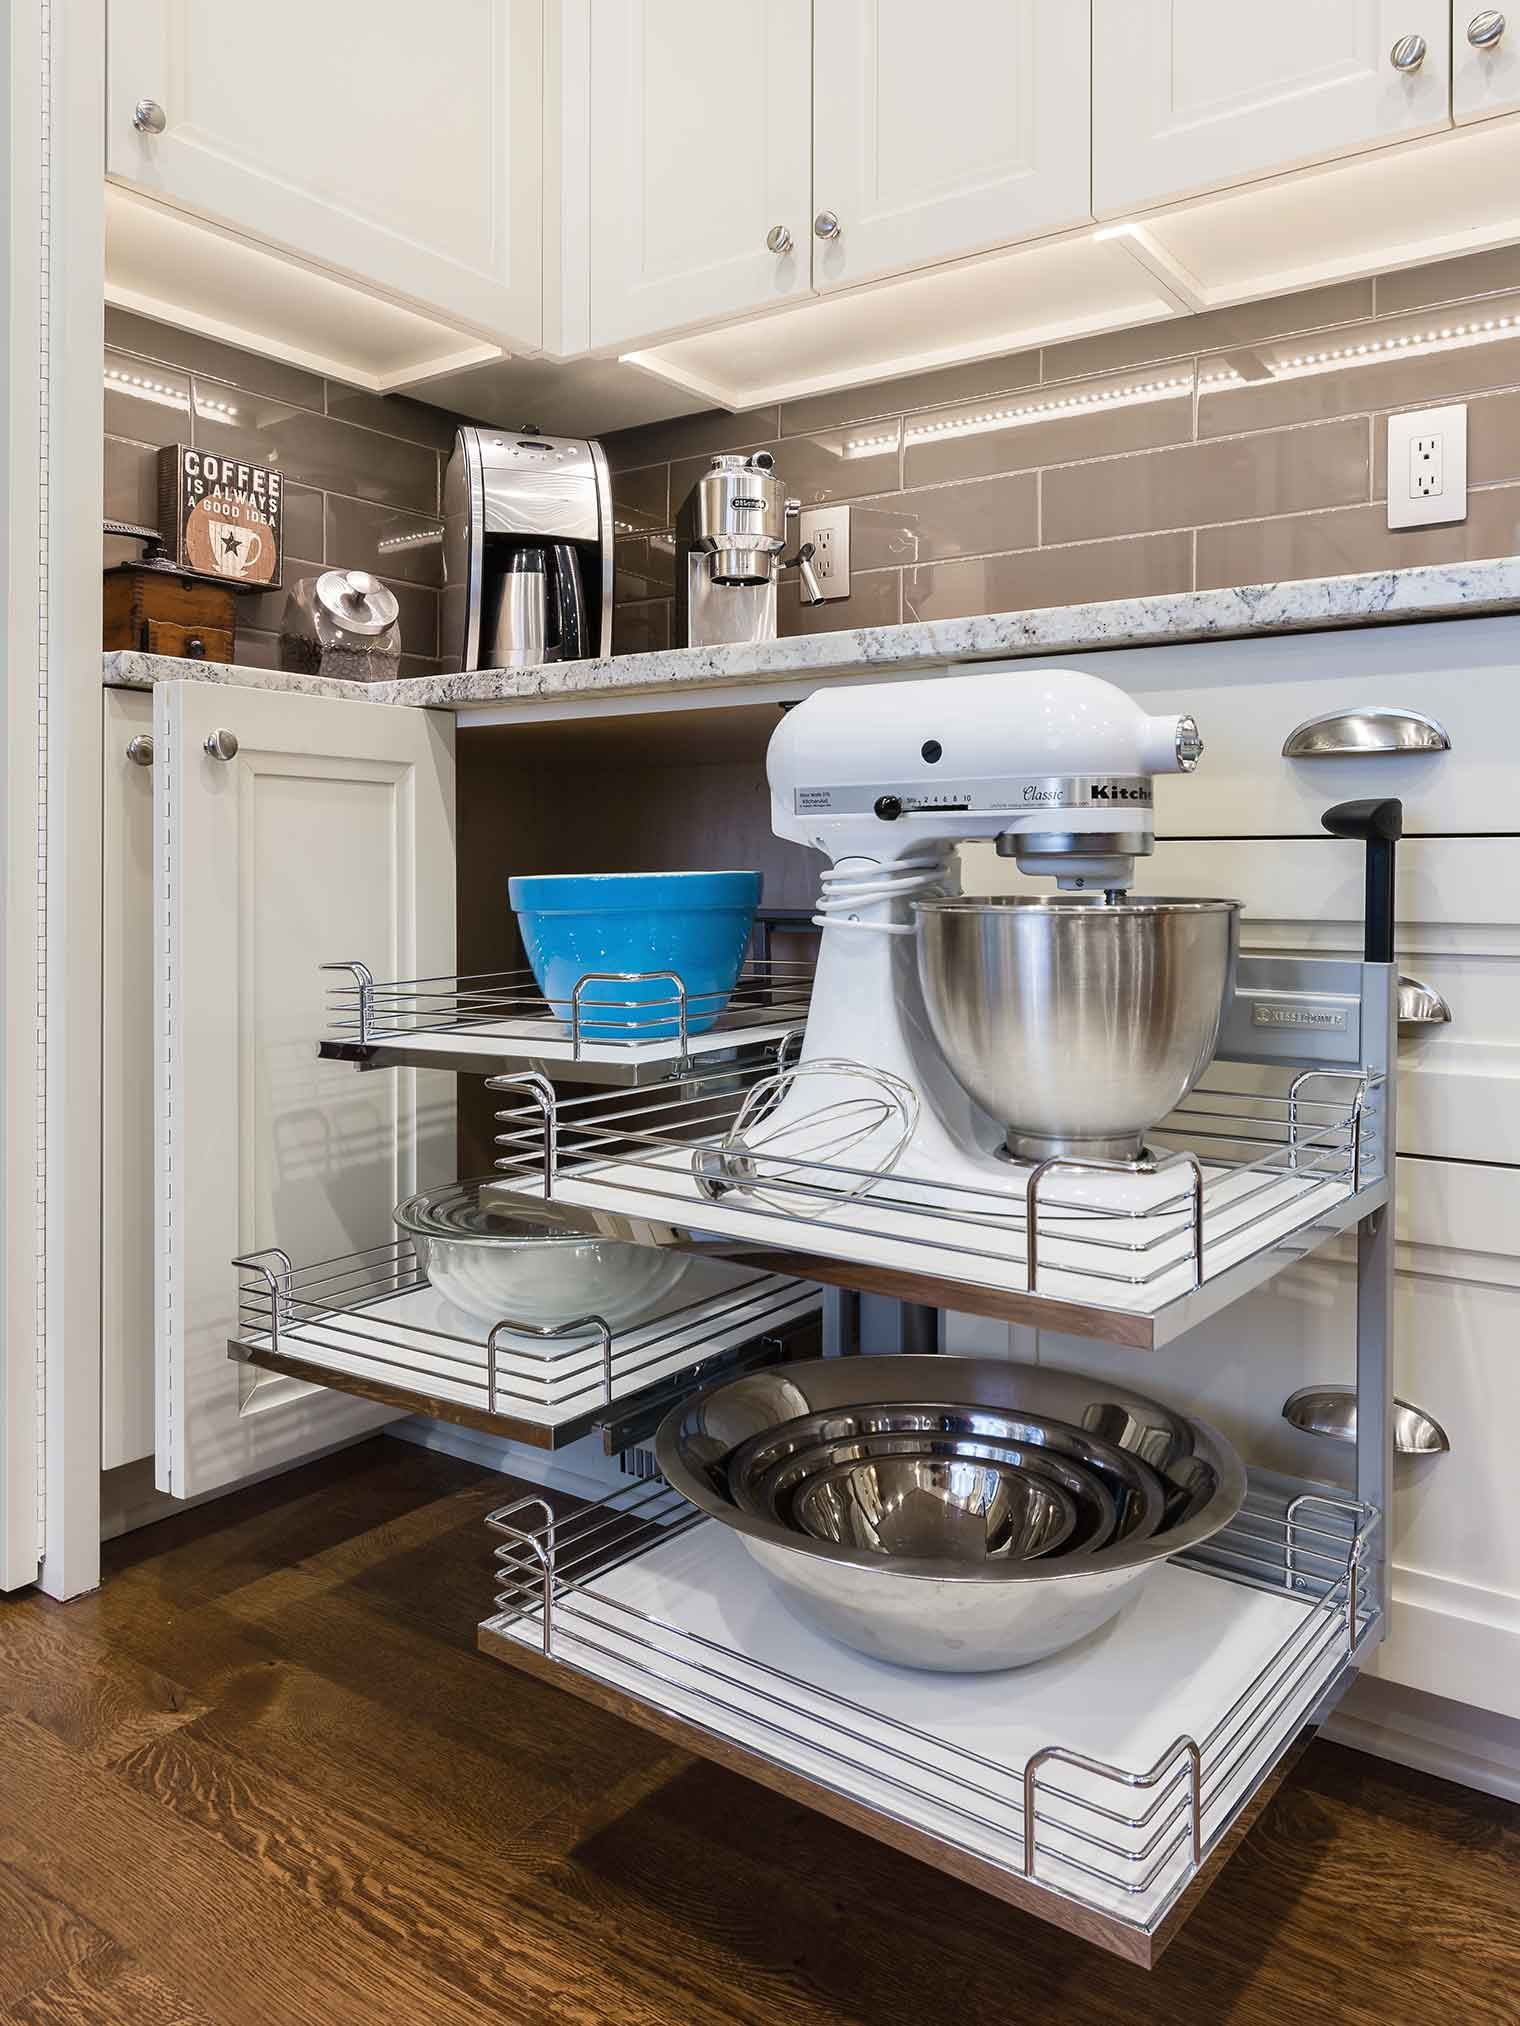 Hidden Treasures And Features More From The Spectacular Kitchen Project Silent Rivers Design Build Custom Homes Remodeling Des Moines Kitchen Cabinet Remodel Interior Design Kitchen Corner Kitchen Cabinet